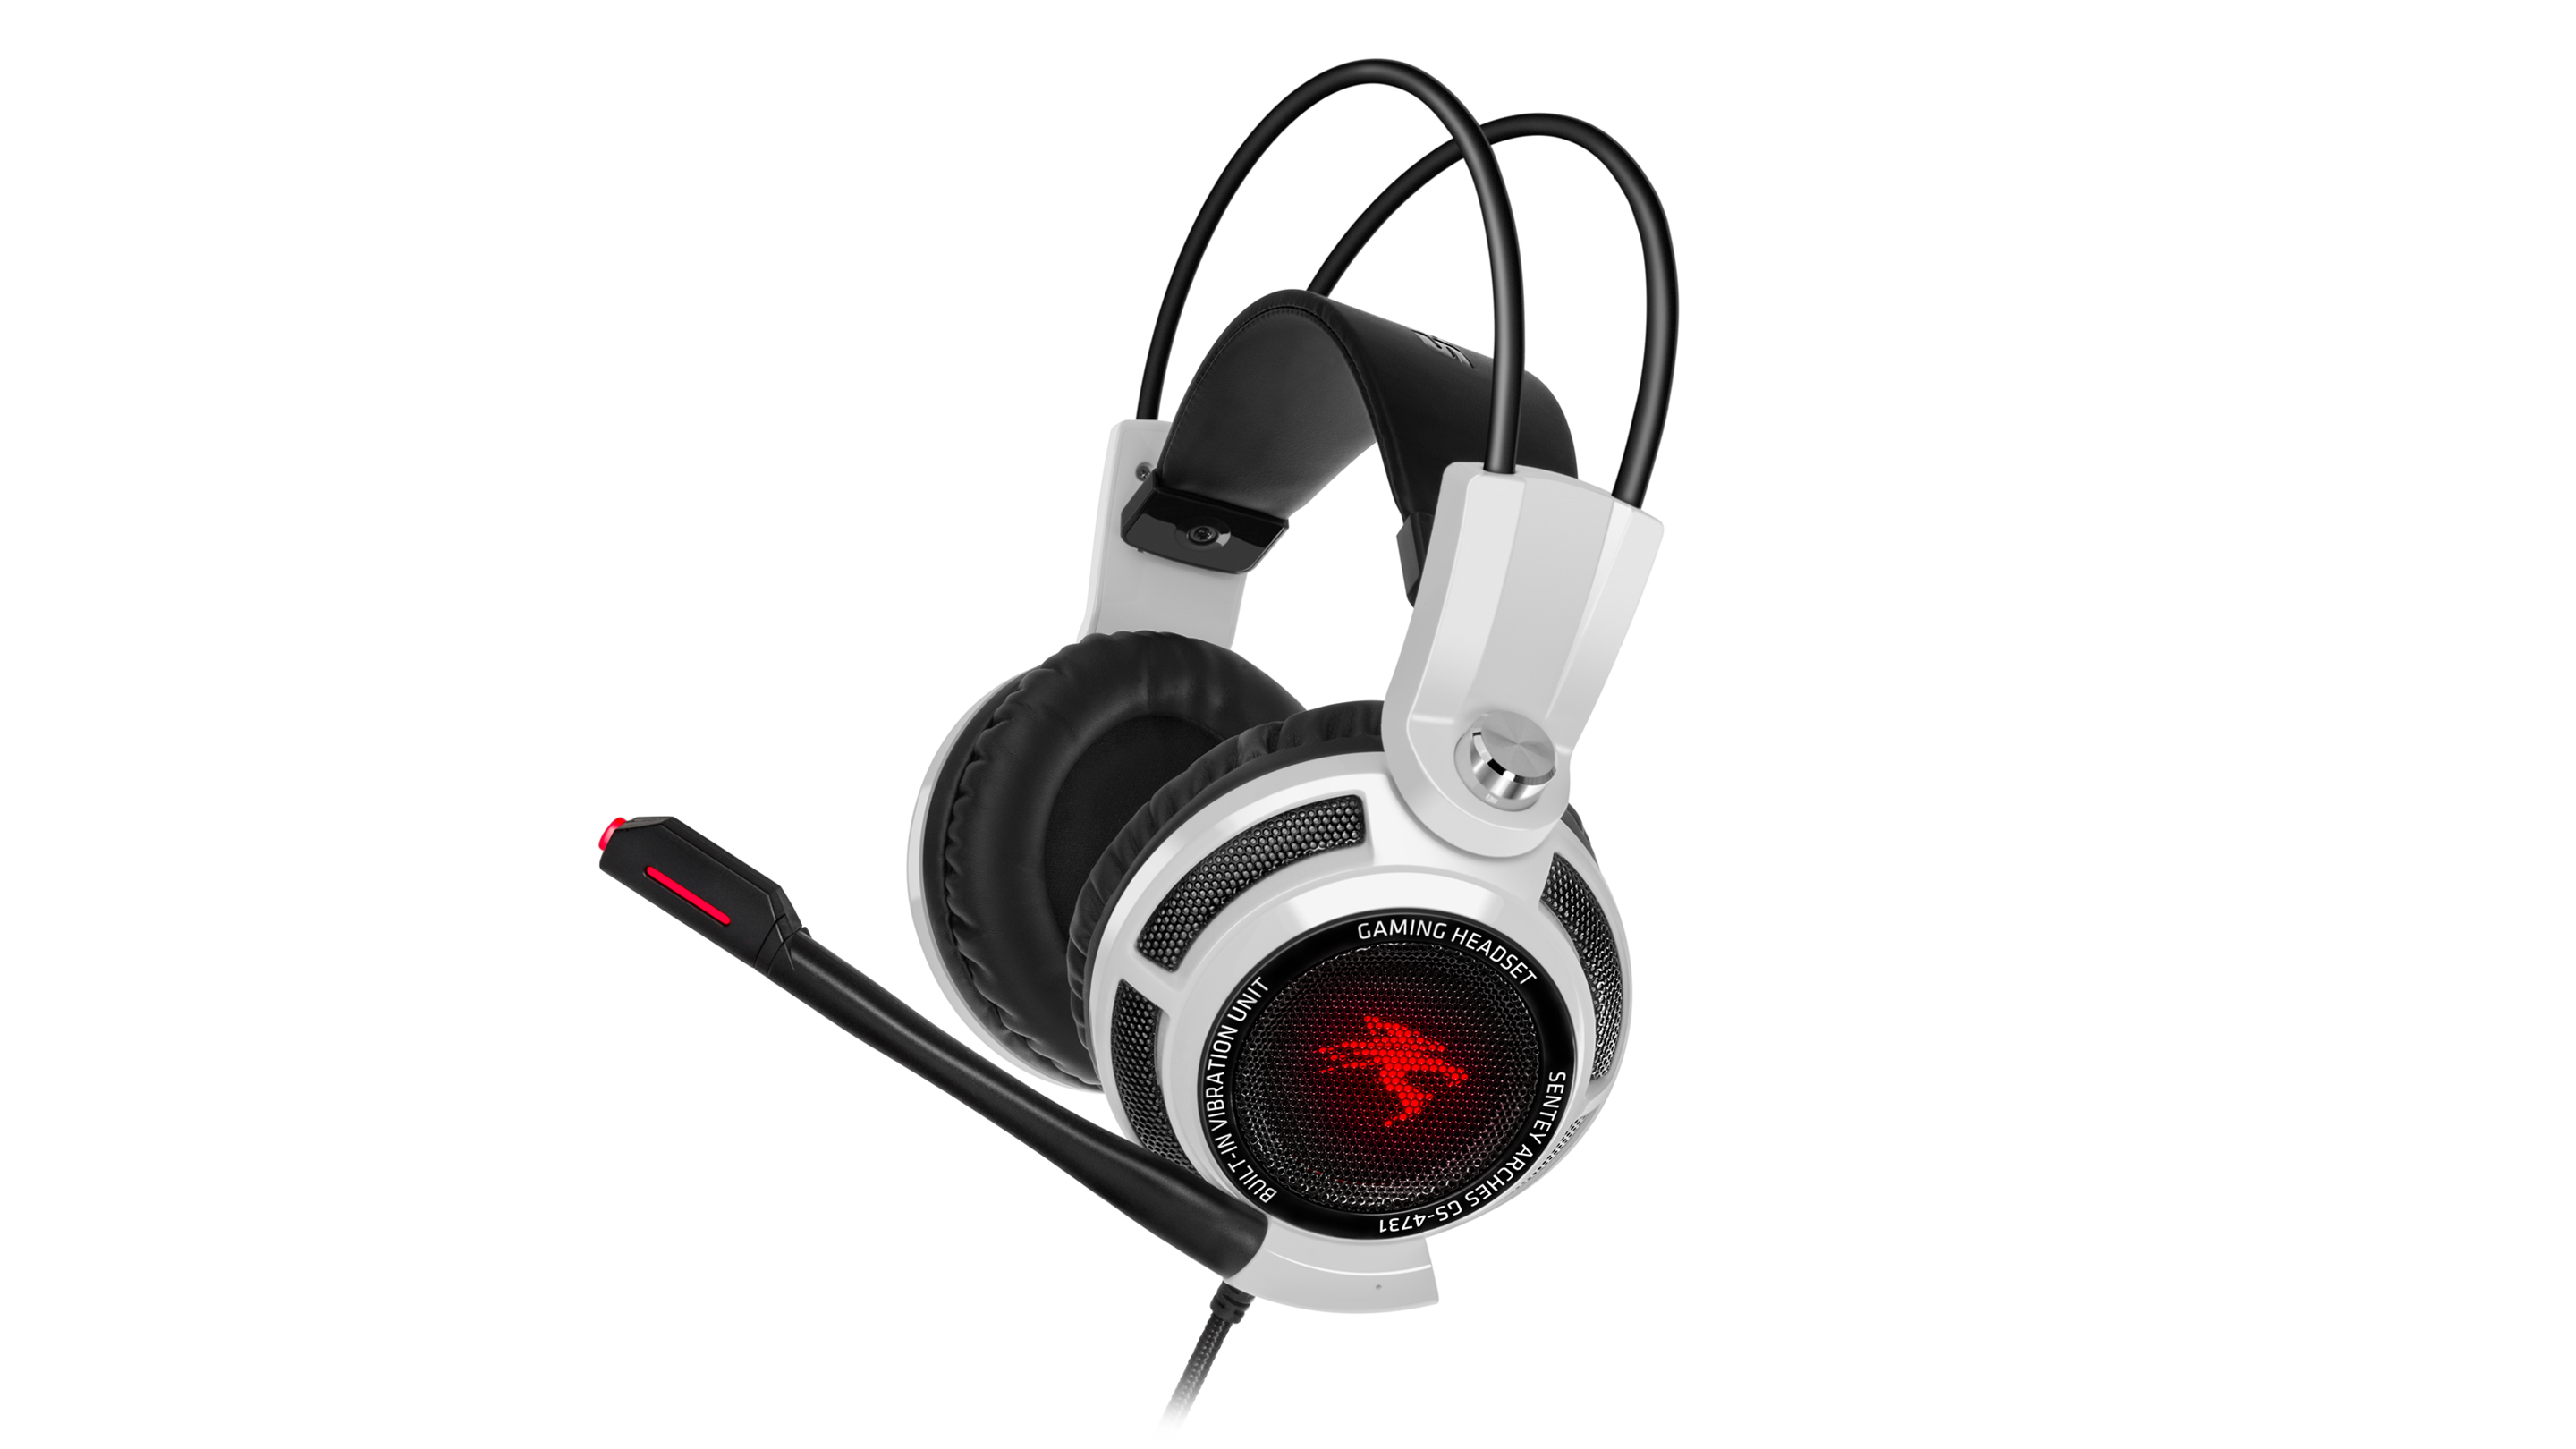 Sentey Usb Headset Driver Download Windows 10